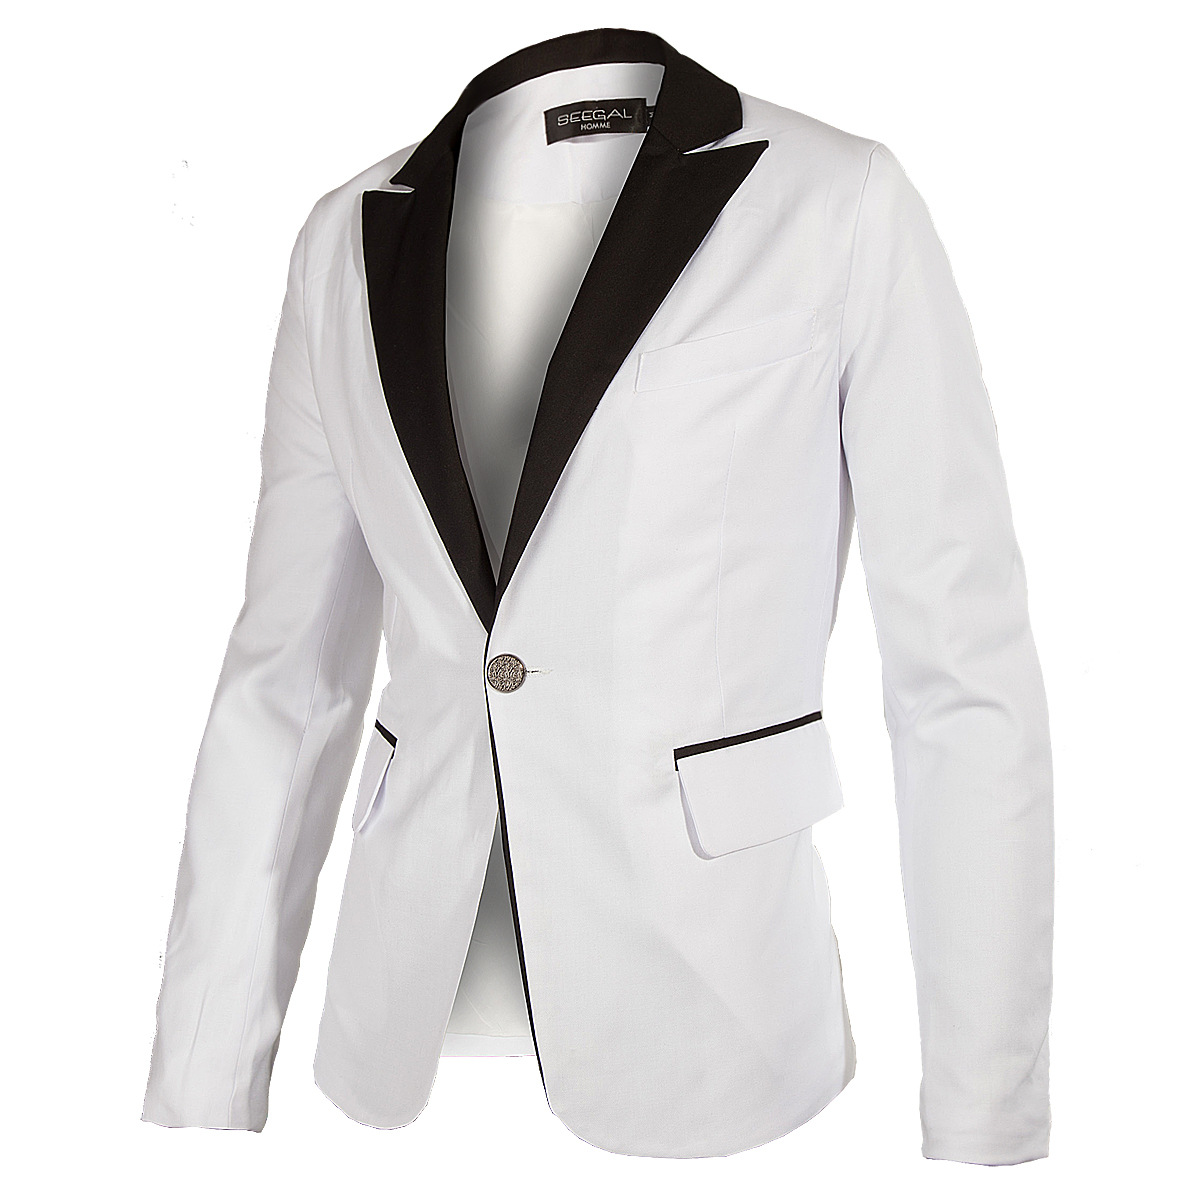 Blazer Men 2015 New brand men's clothing white blazer outerwear suit fitness casual suits men blazers jacket coats for men(China (Mainland))